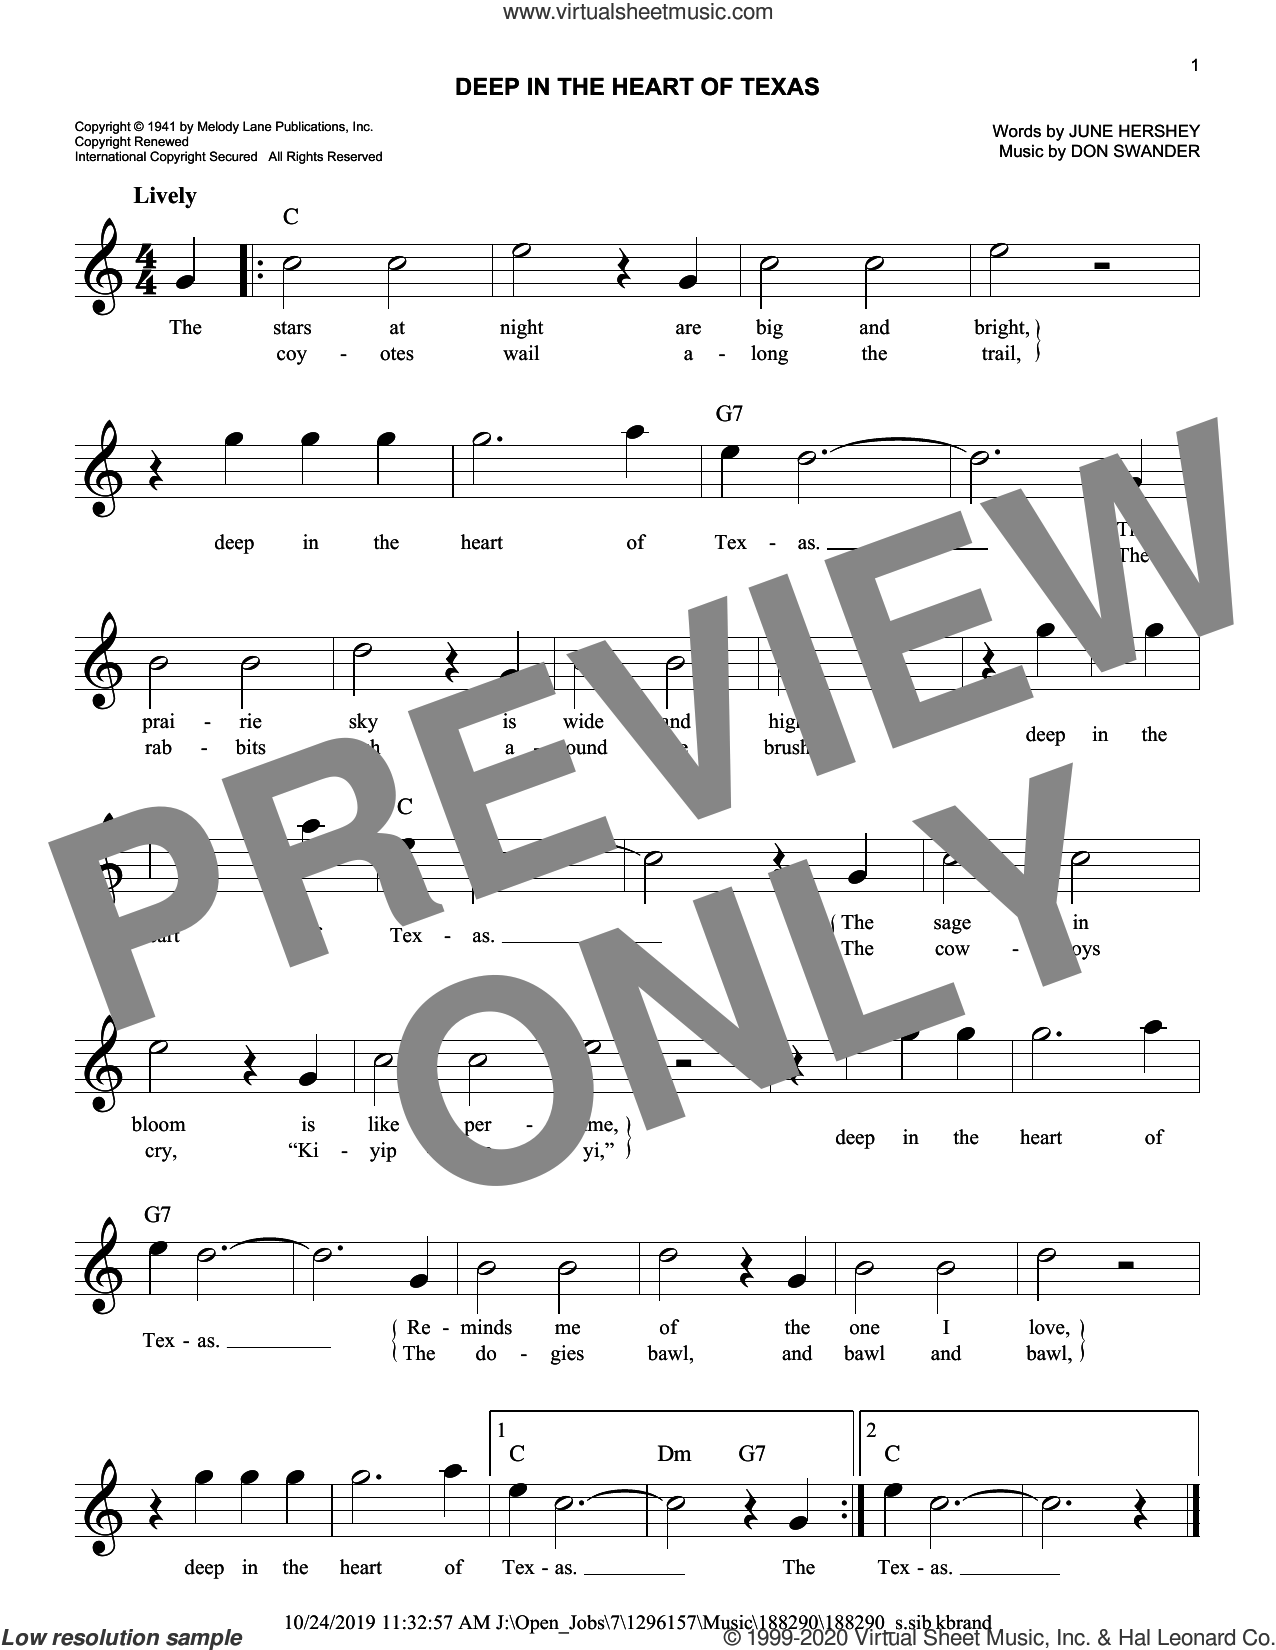 Deep In The Heart Of Texas sheet music for voice and other instruments (fake book) by Gene Autry, Don Swander and June Hershey, intermediate skill level